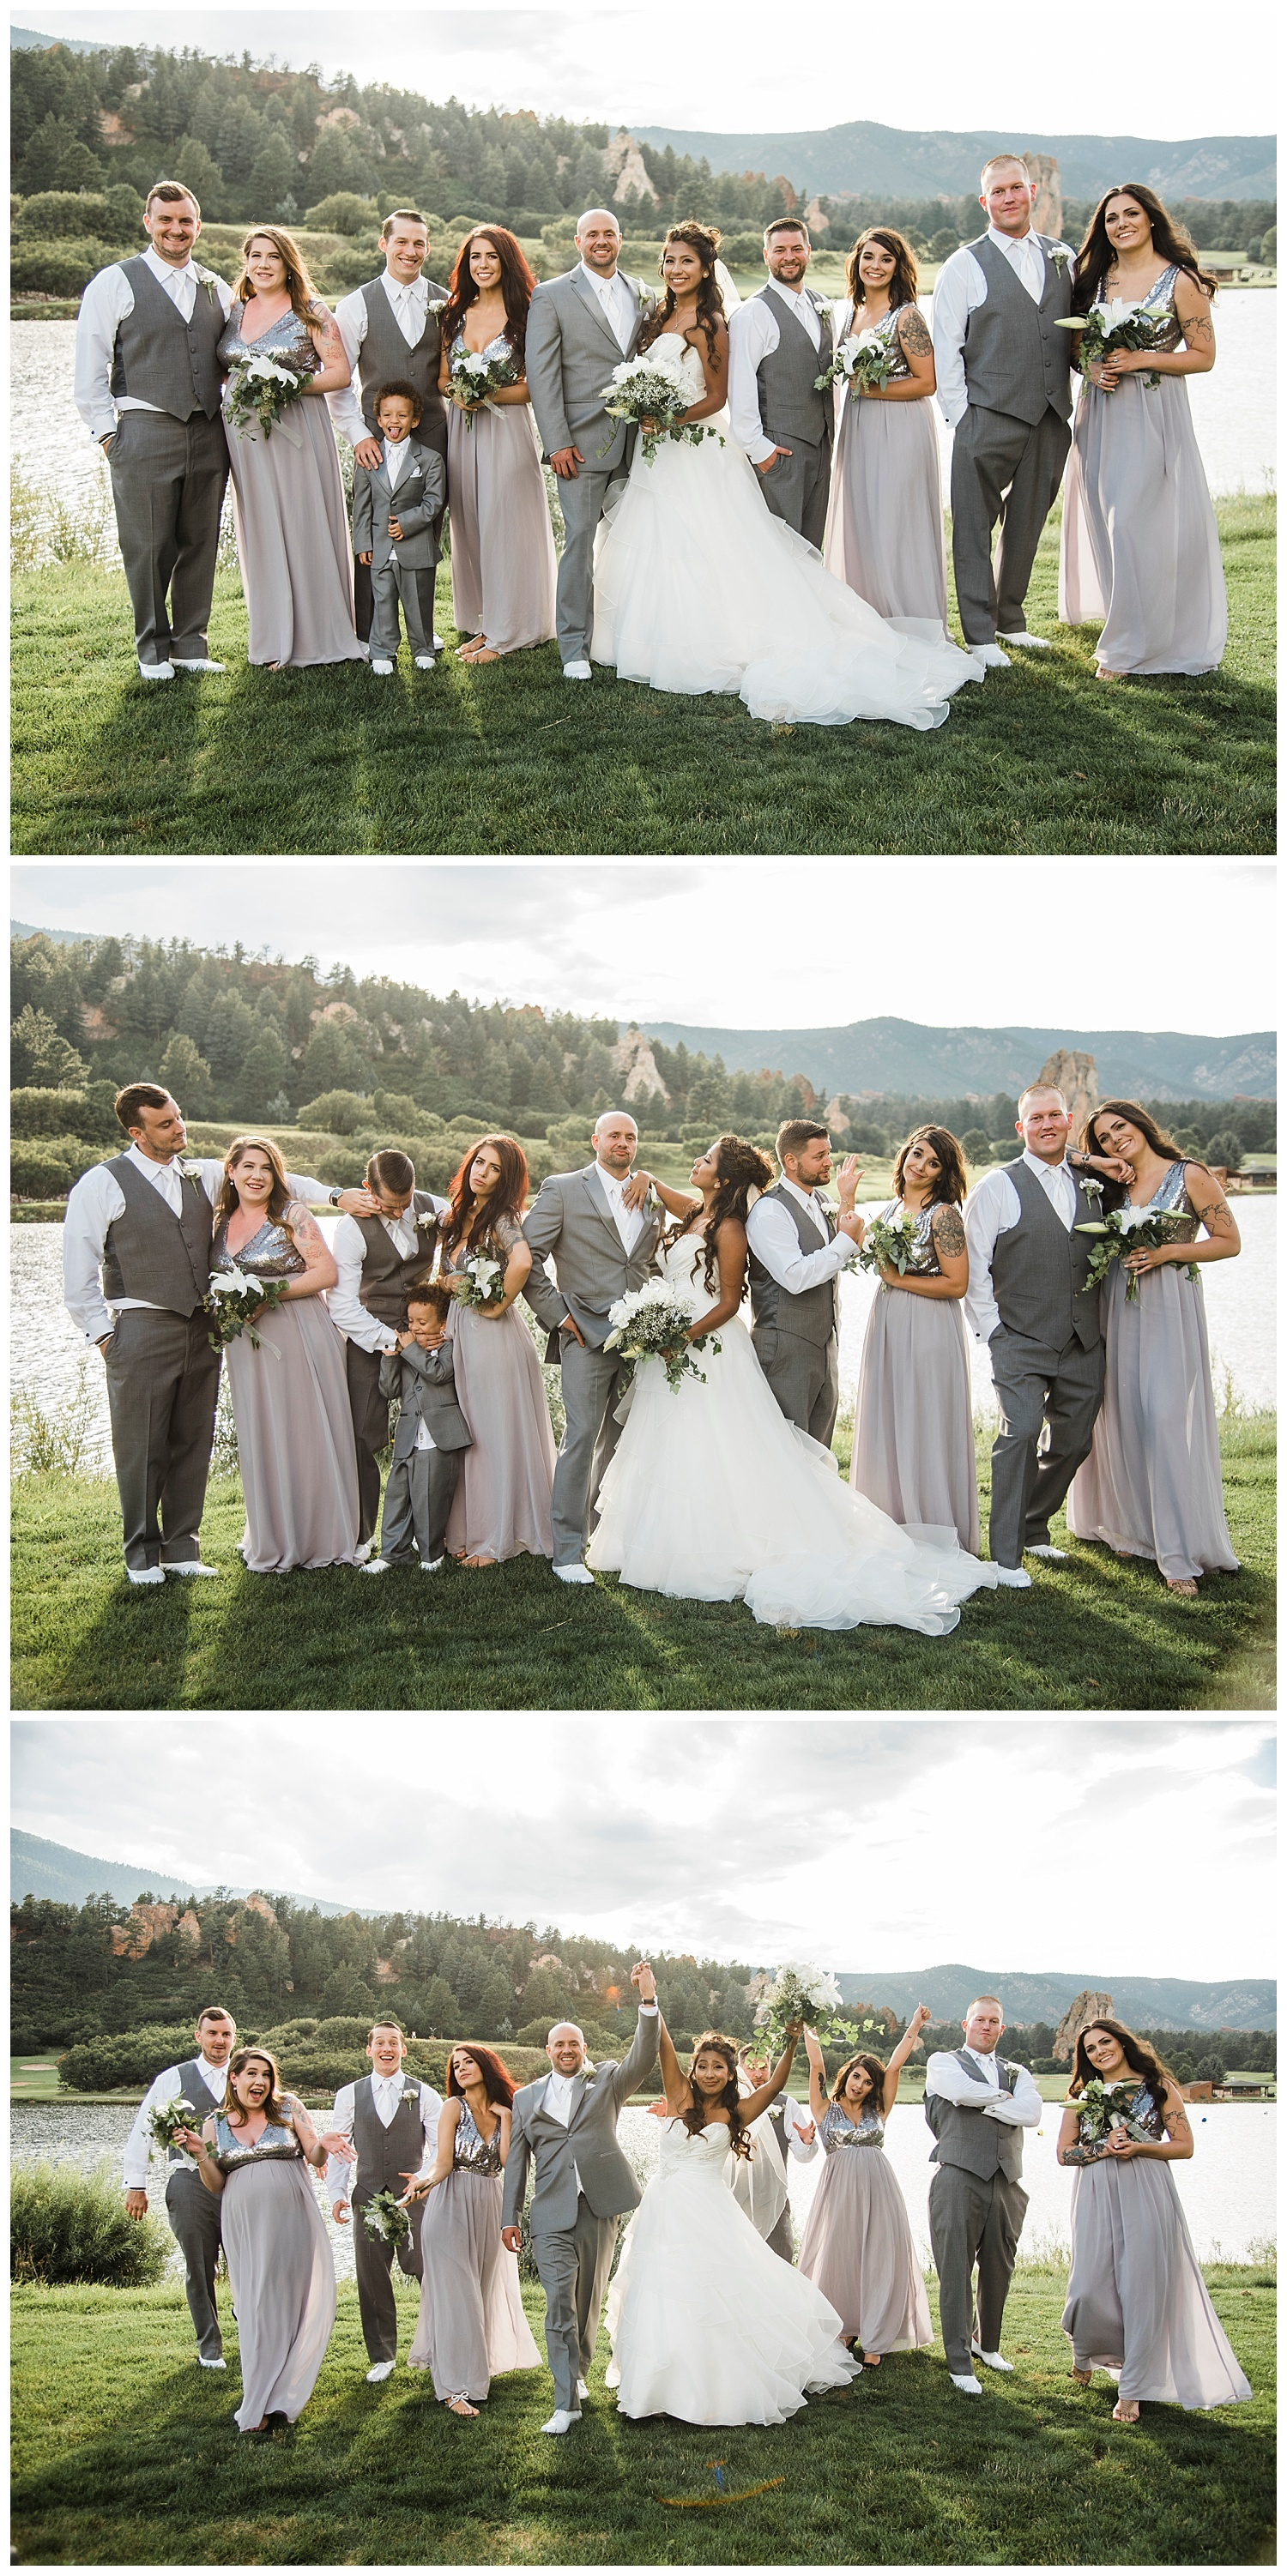 Perry_Park_Country_Club_Wedding_Larkspur_Colorado_Apollo_Fields_27.jpg